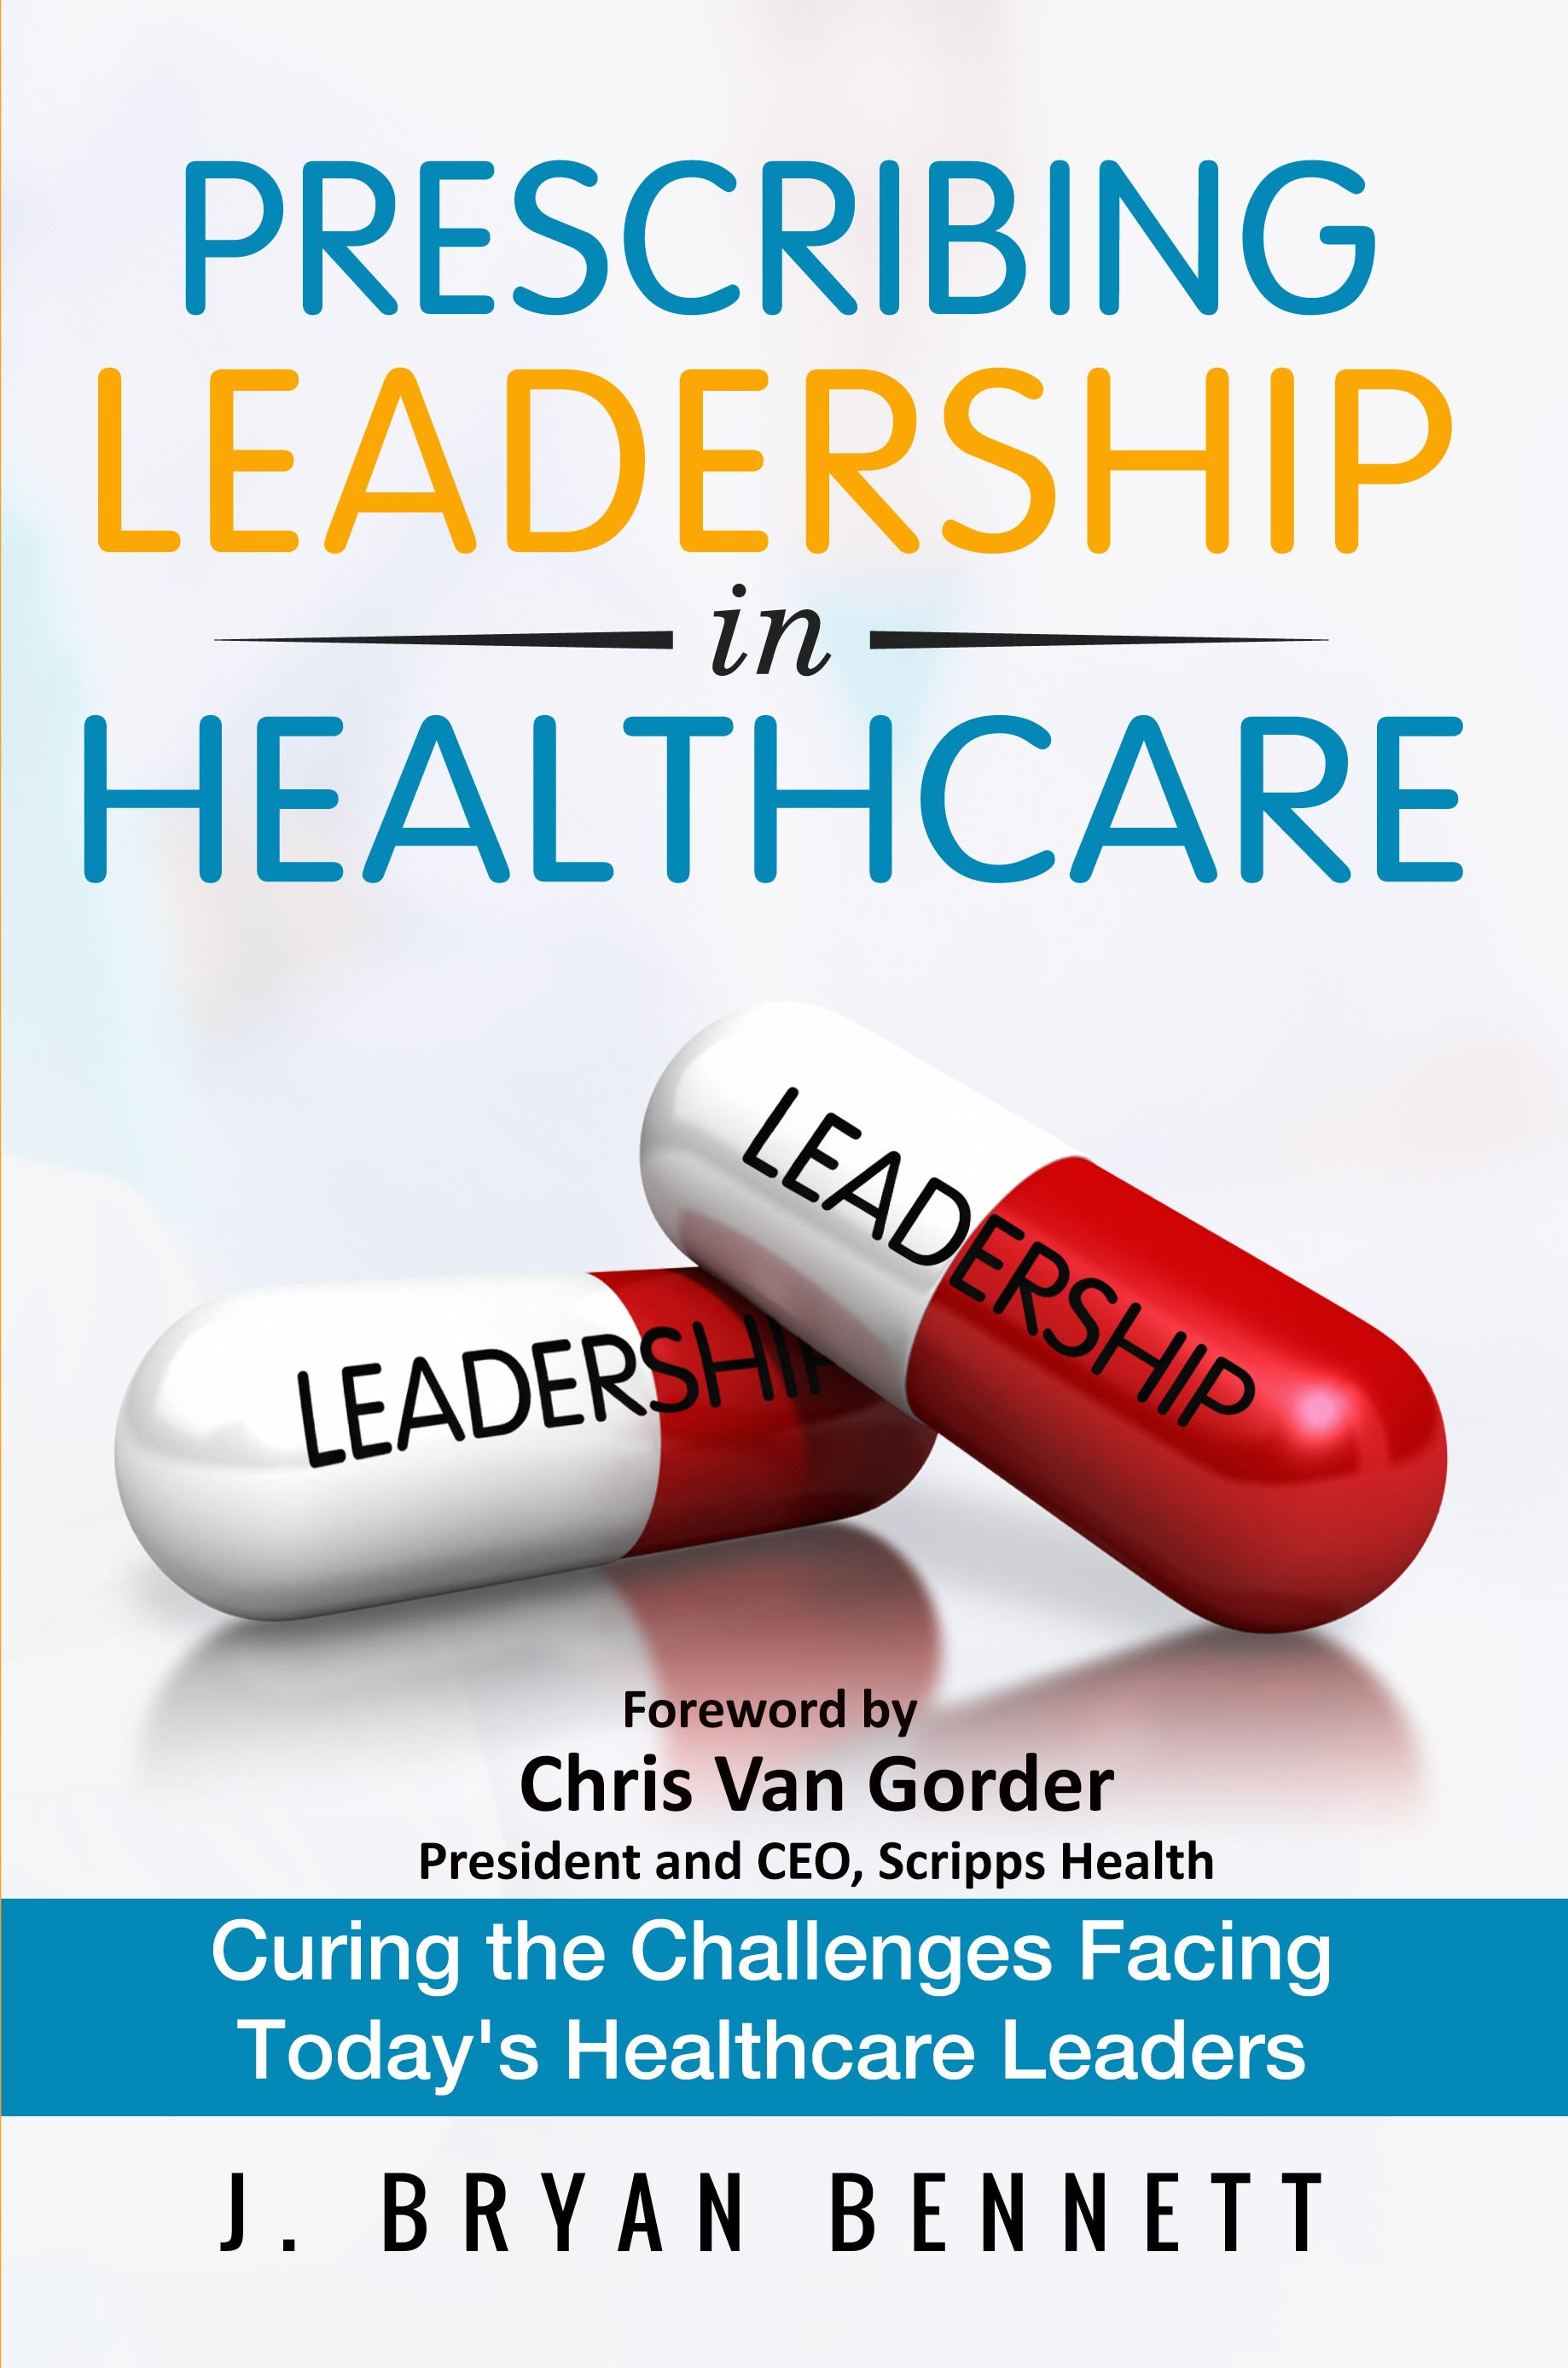 Prescribing Leadership in Healthcare - PREVIEW